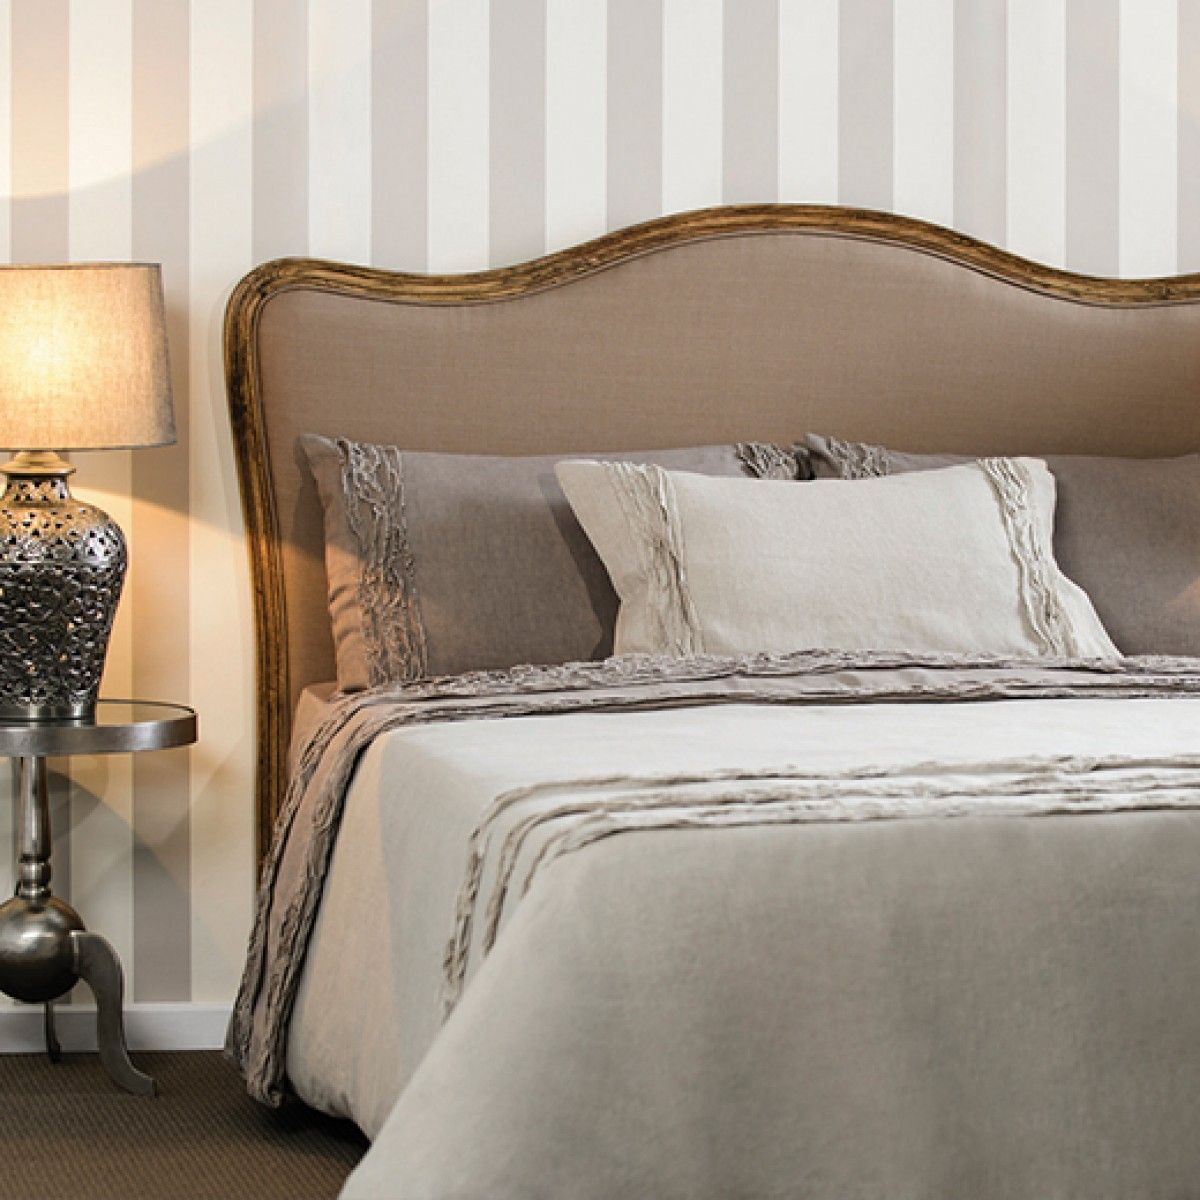 Buy Online Early Settler Bed Head Wood Romance Suite Pinterest - Settler bedroom furniture